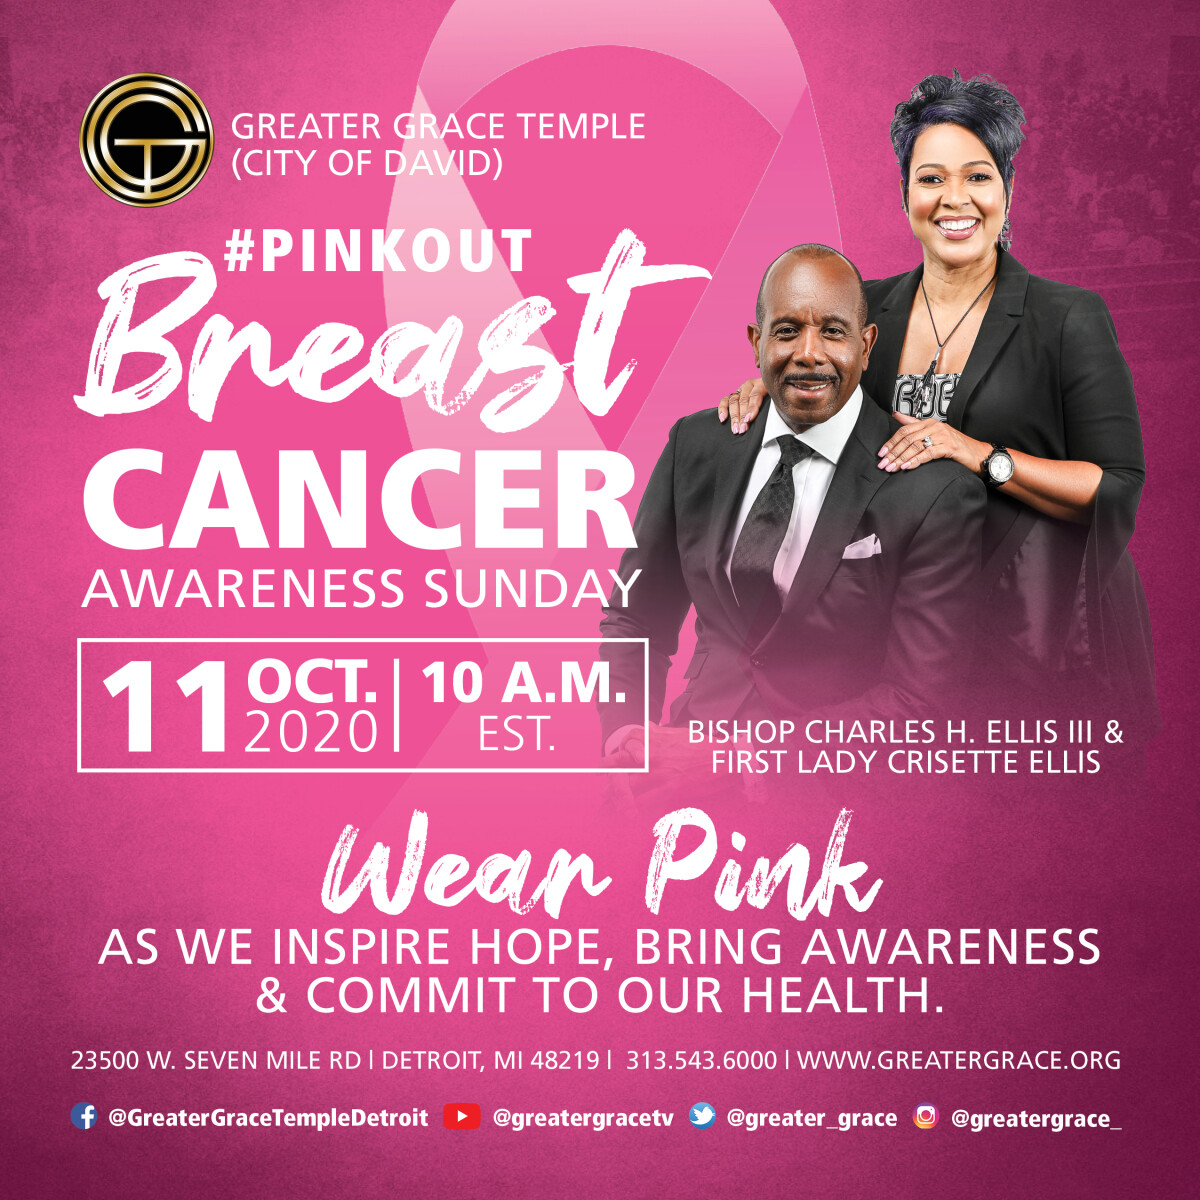 Breast Cancer Awareness Sunday